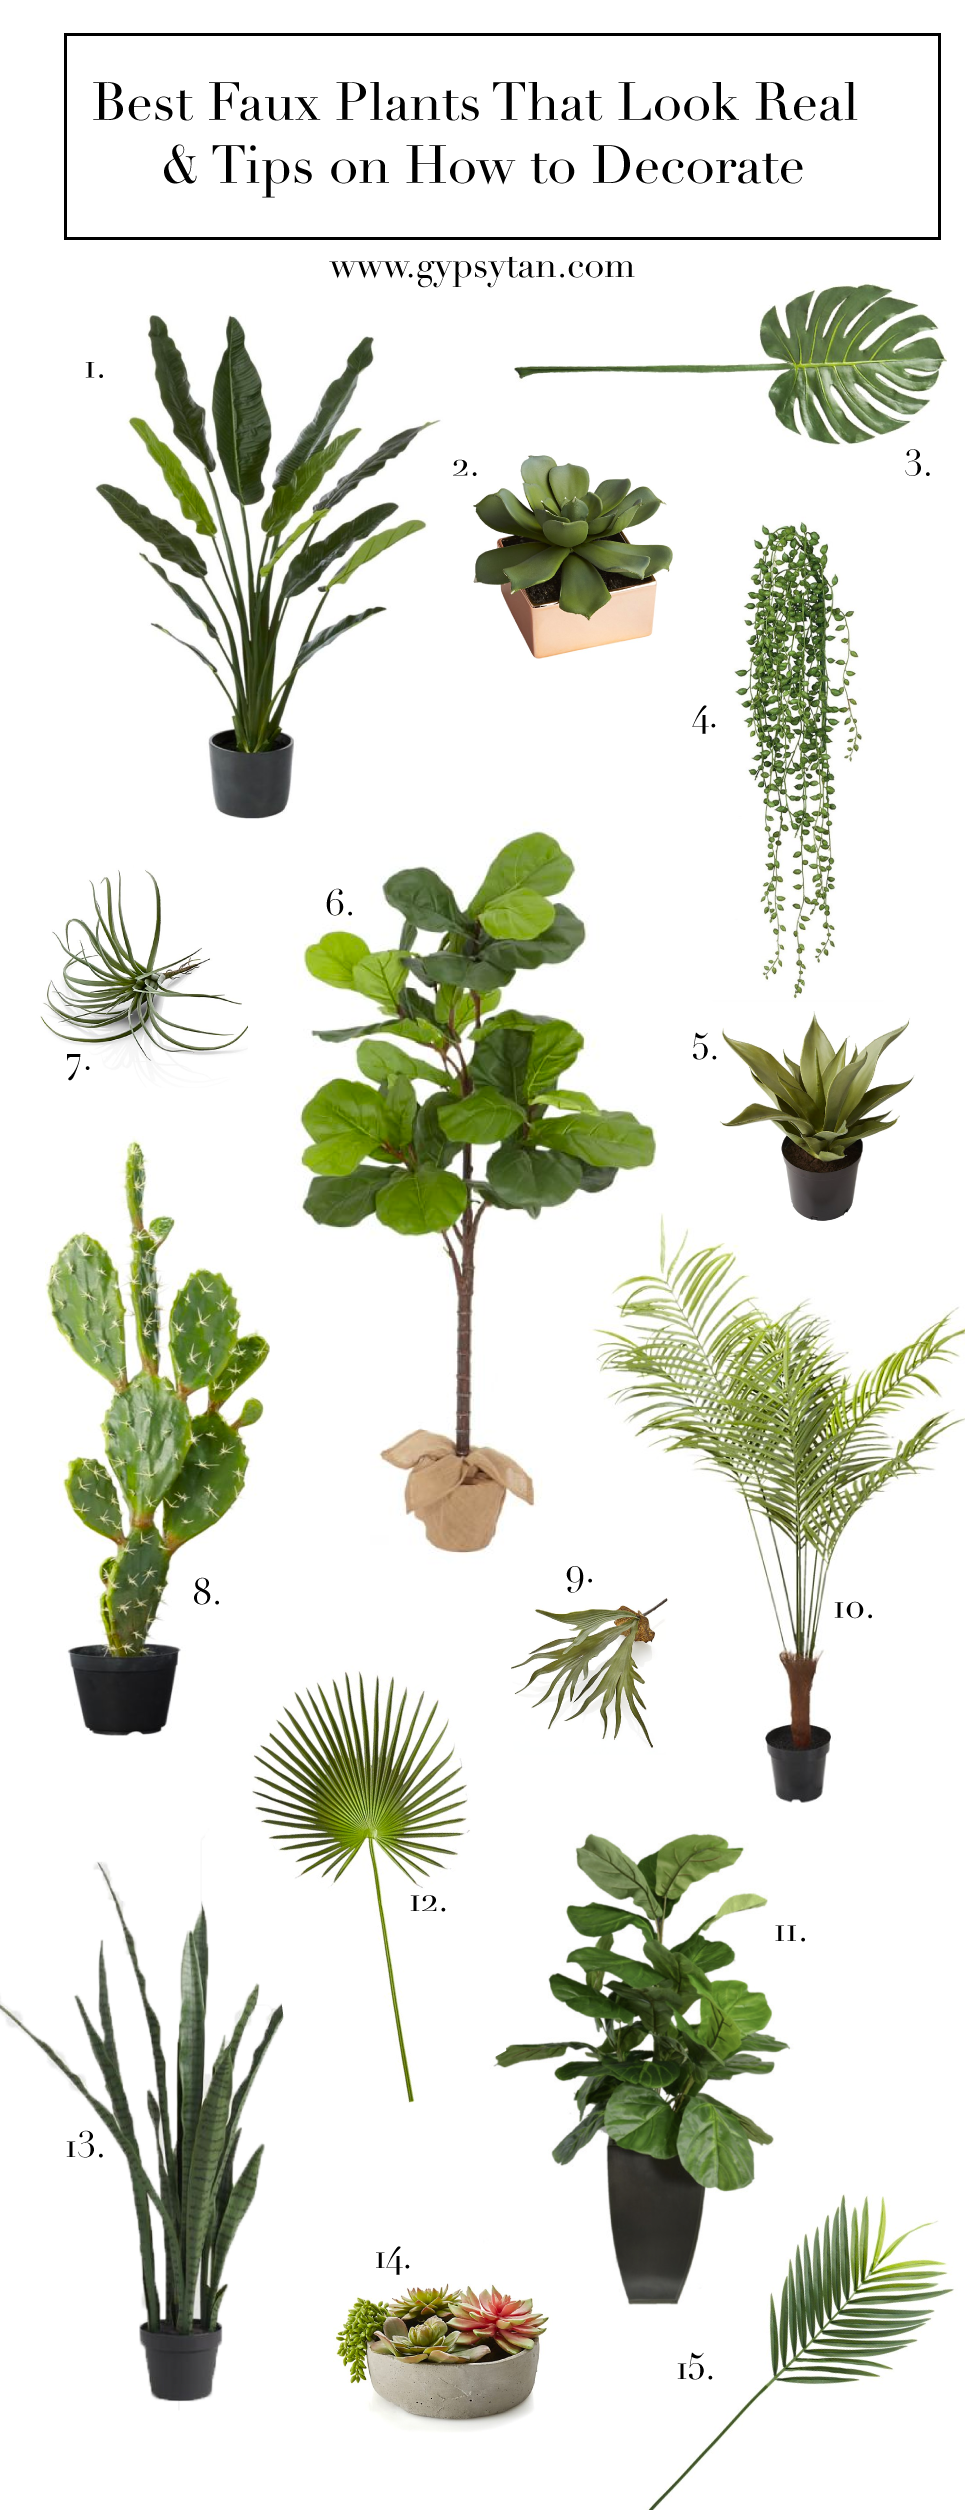 Best Realistic Faux Plants for Your Home & Tips on How to Decorate